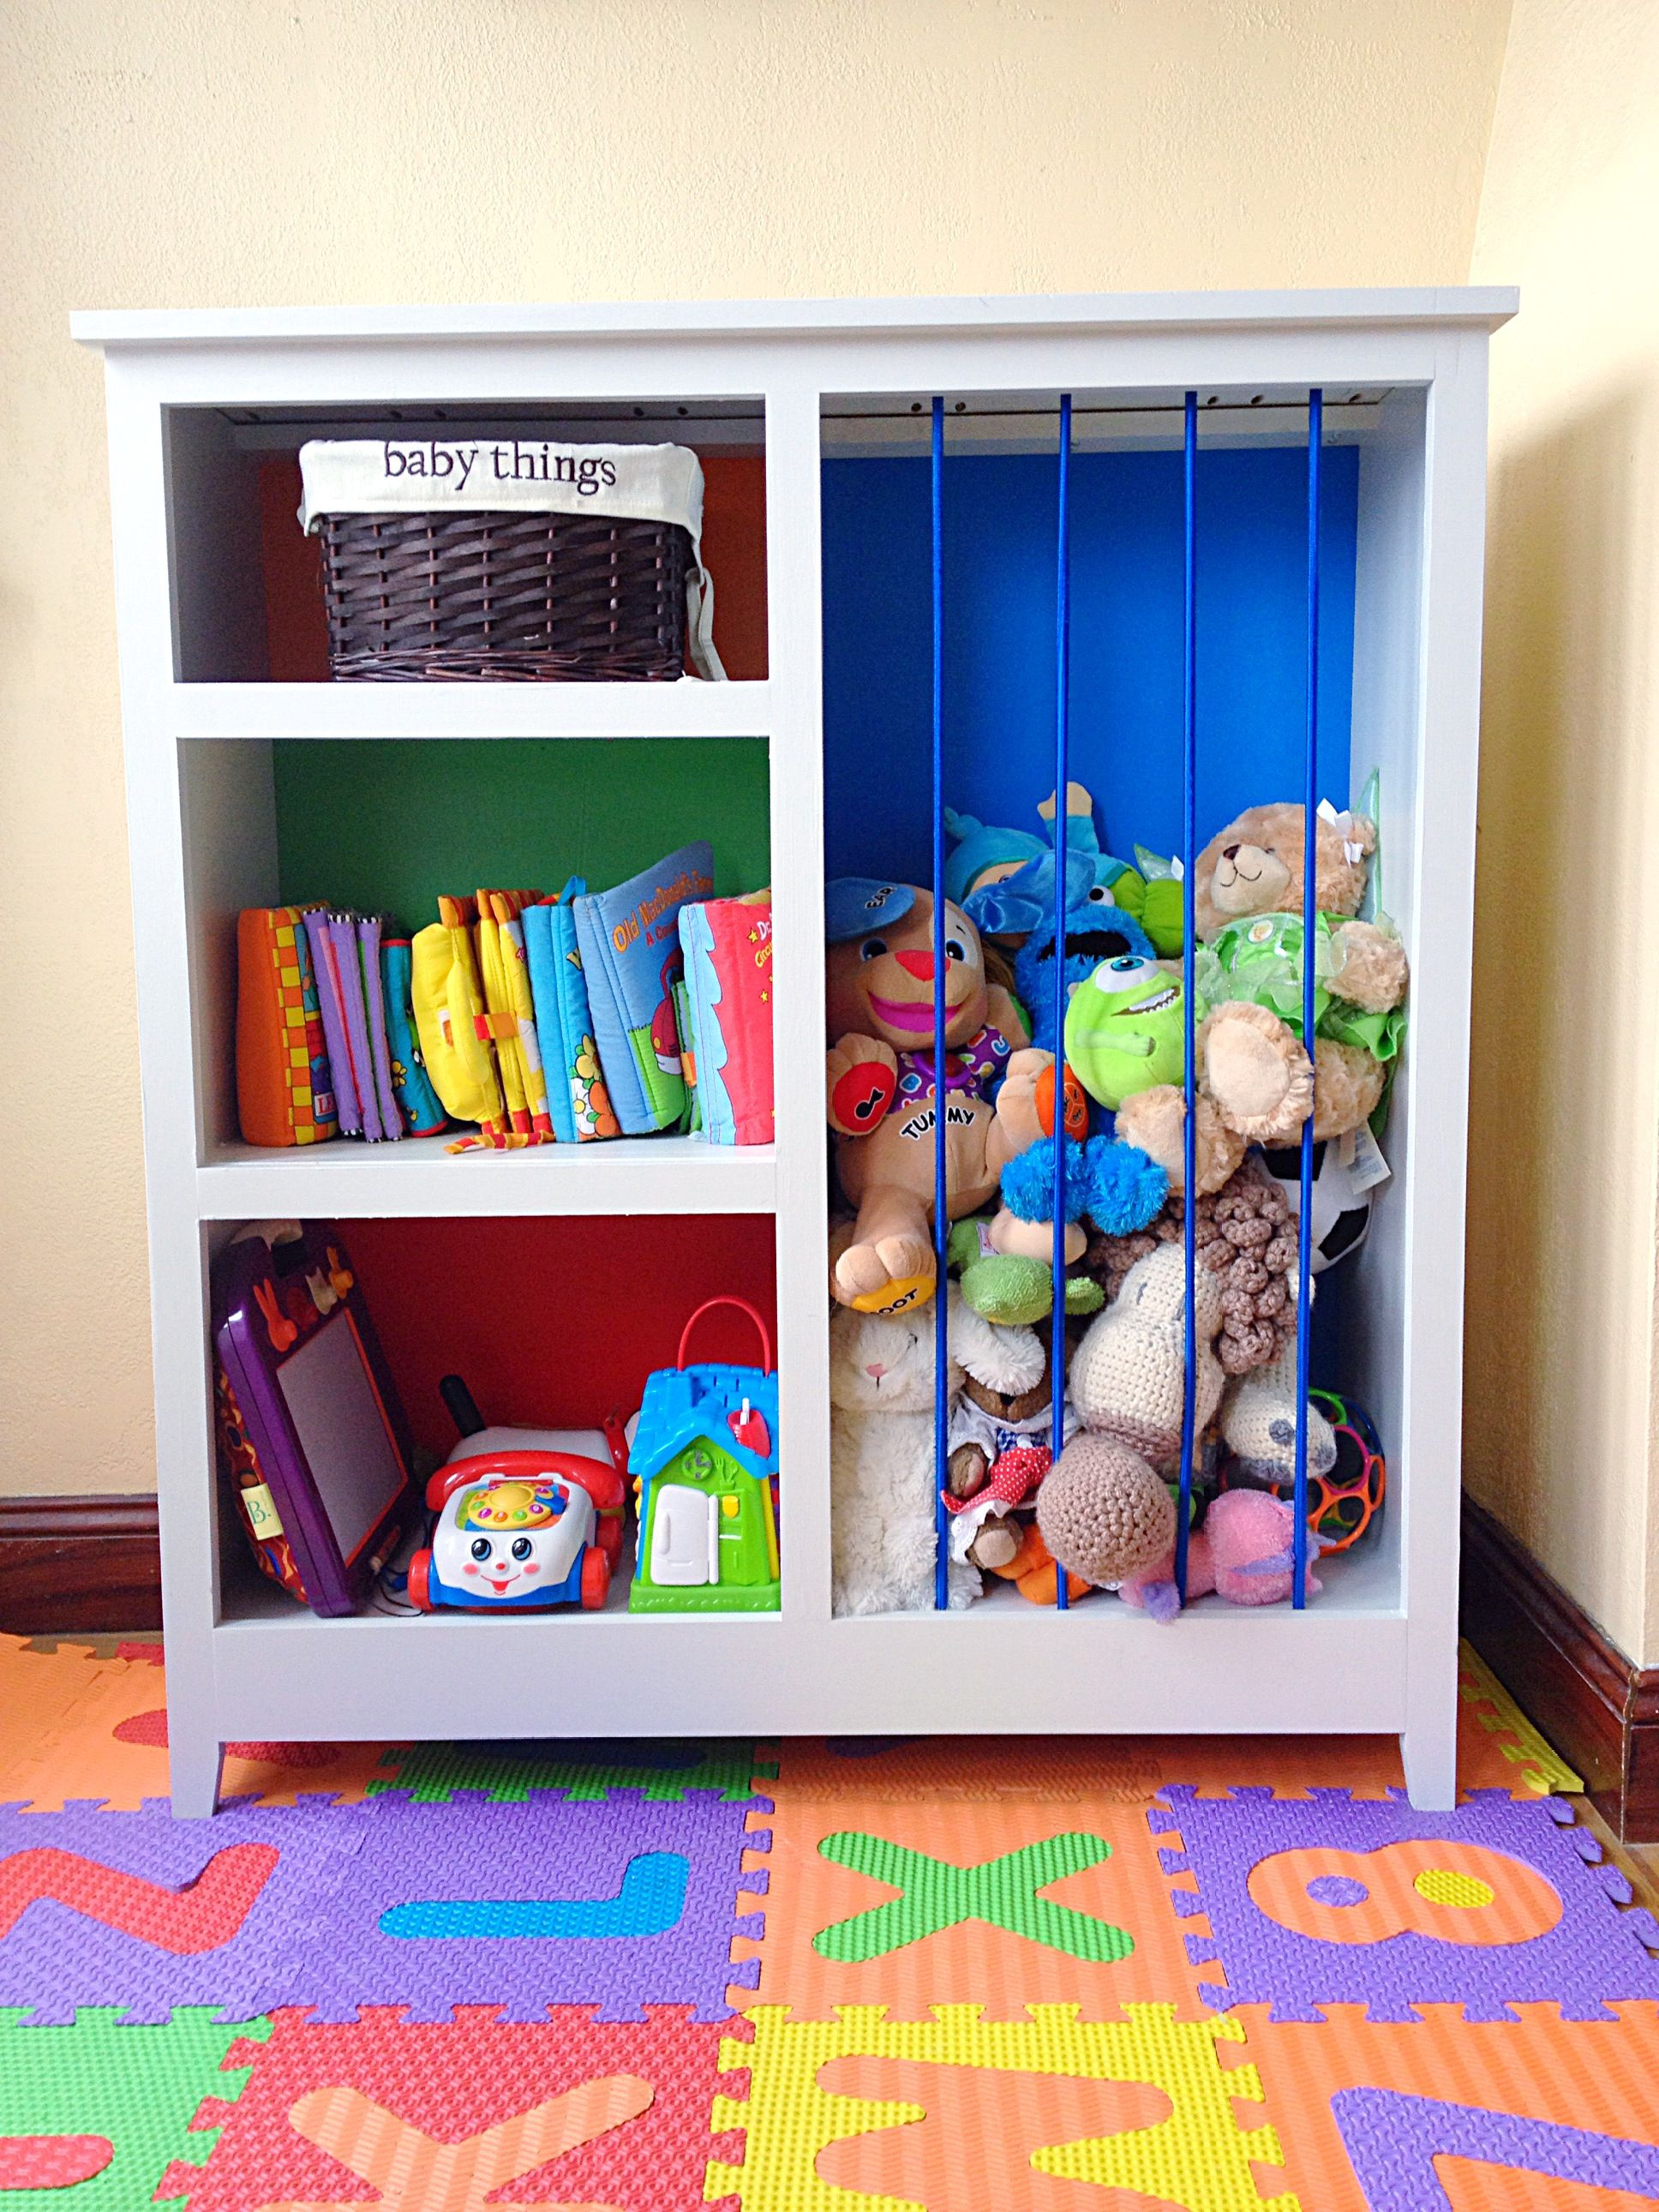 Repurposed Bookshelf Ideas | Re purposed bookshelves | Playroom ...